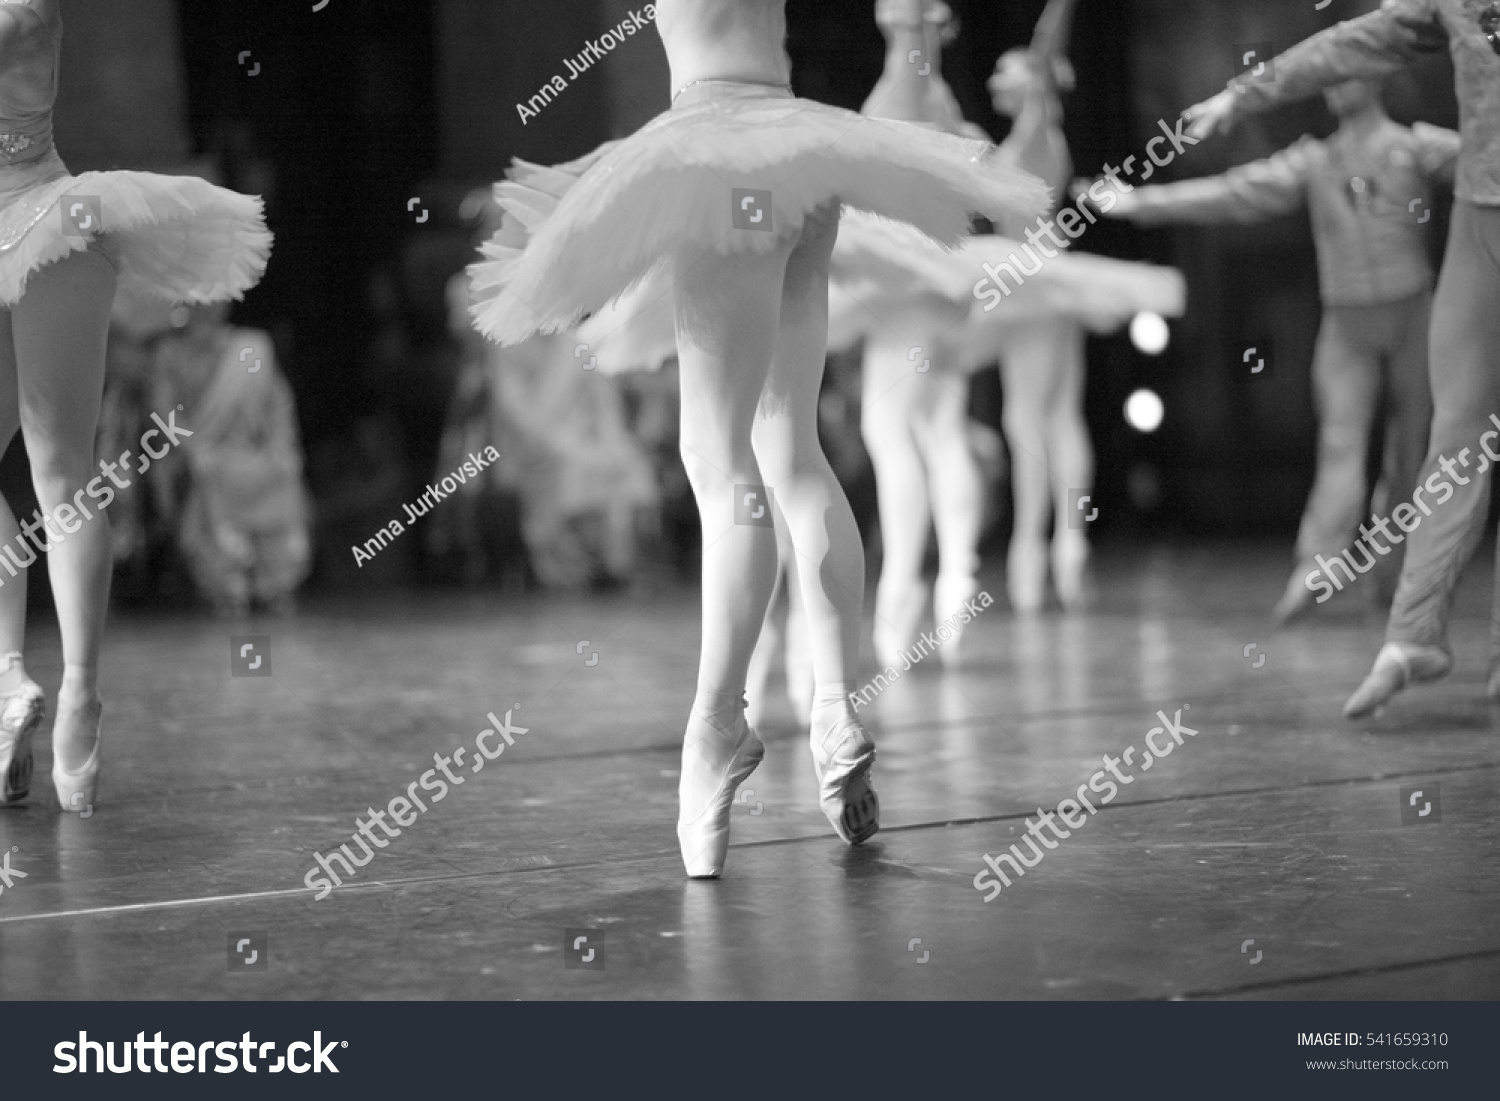 stock-photo-ballet-dancers-on-stage-during-a-performance-in-the-theater-541659310.jpg